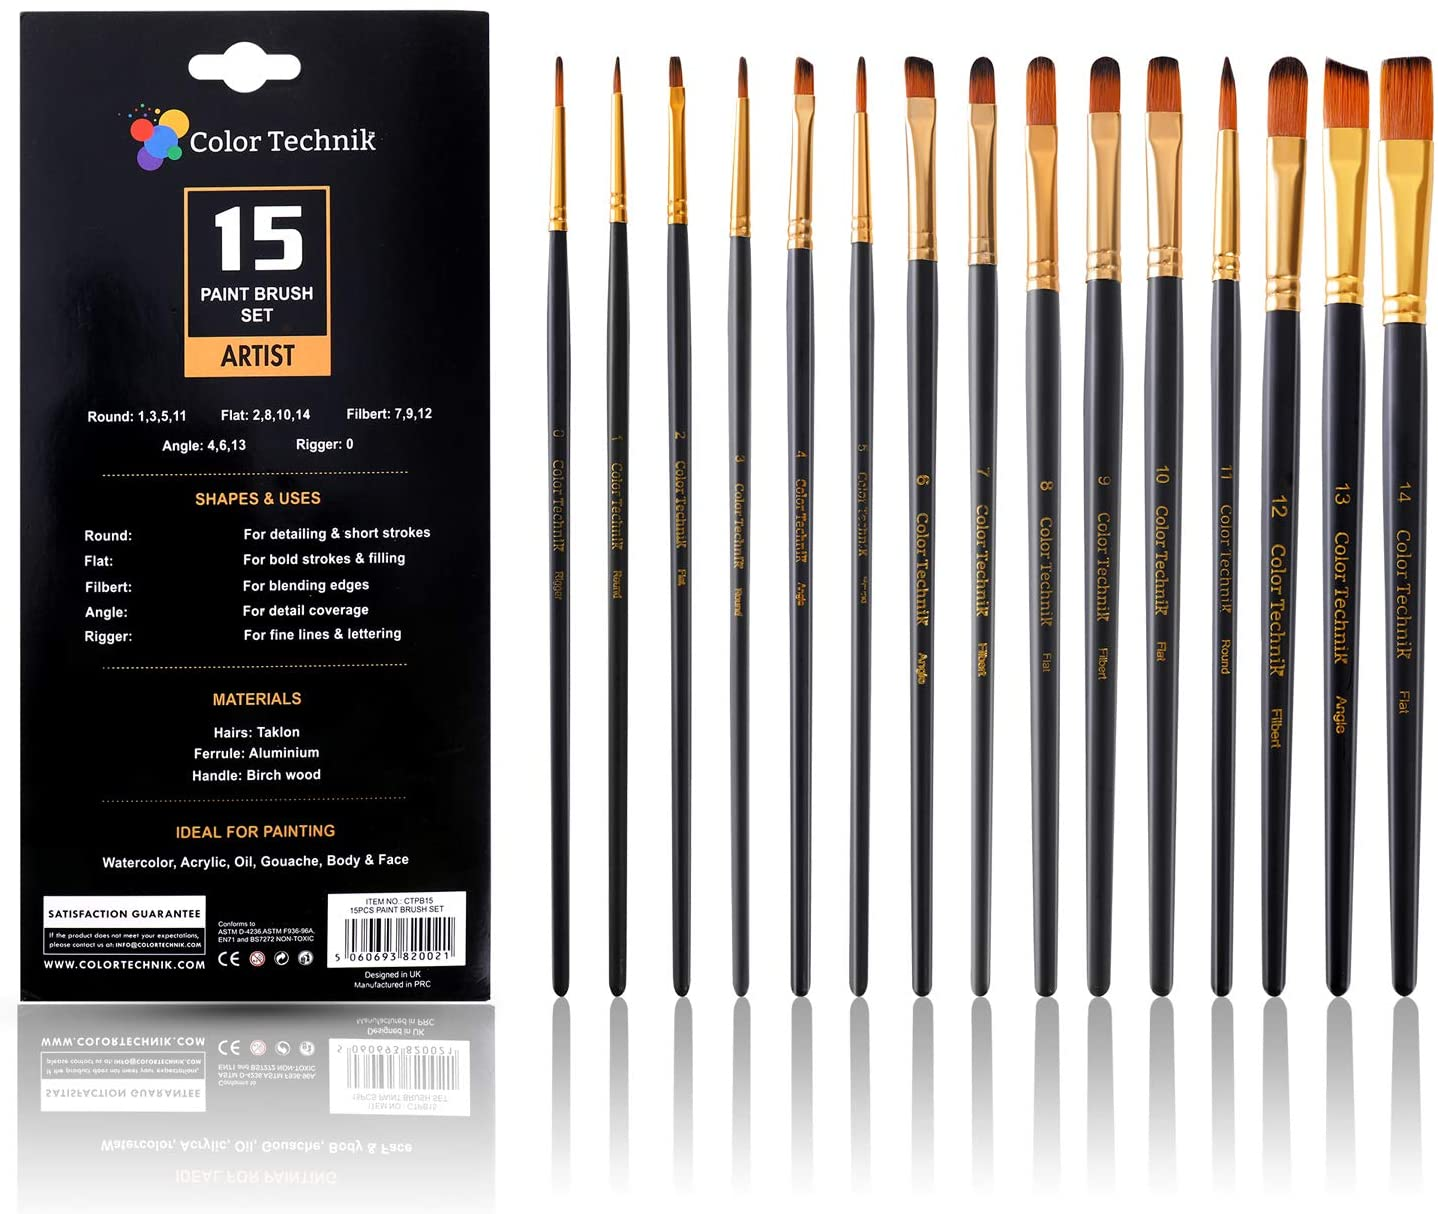 Paint Brush Set of 15 by Color Technik